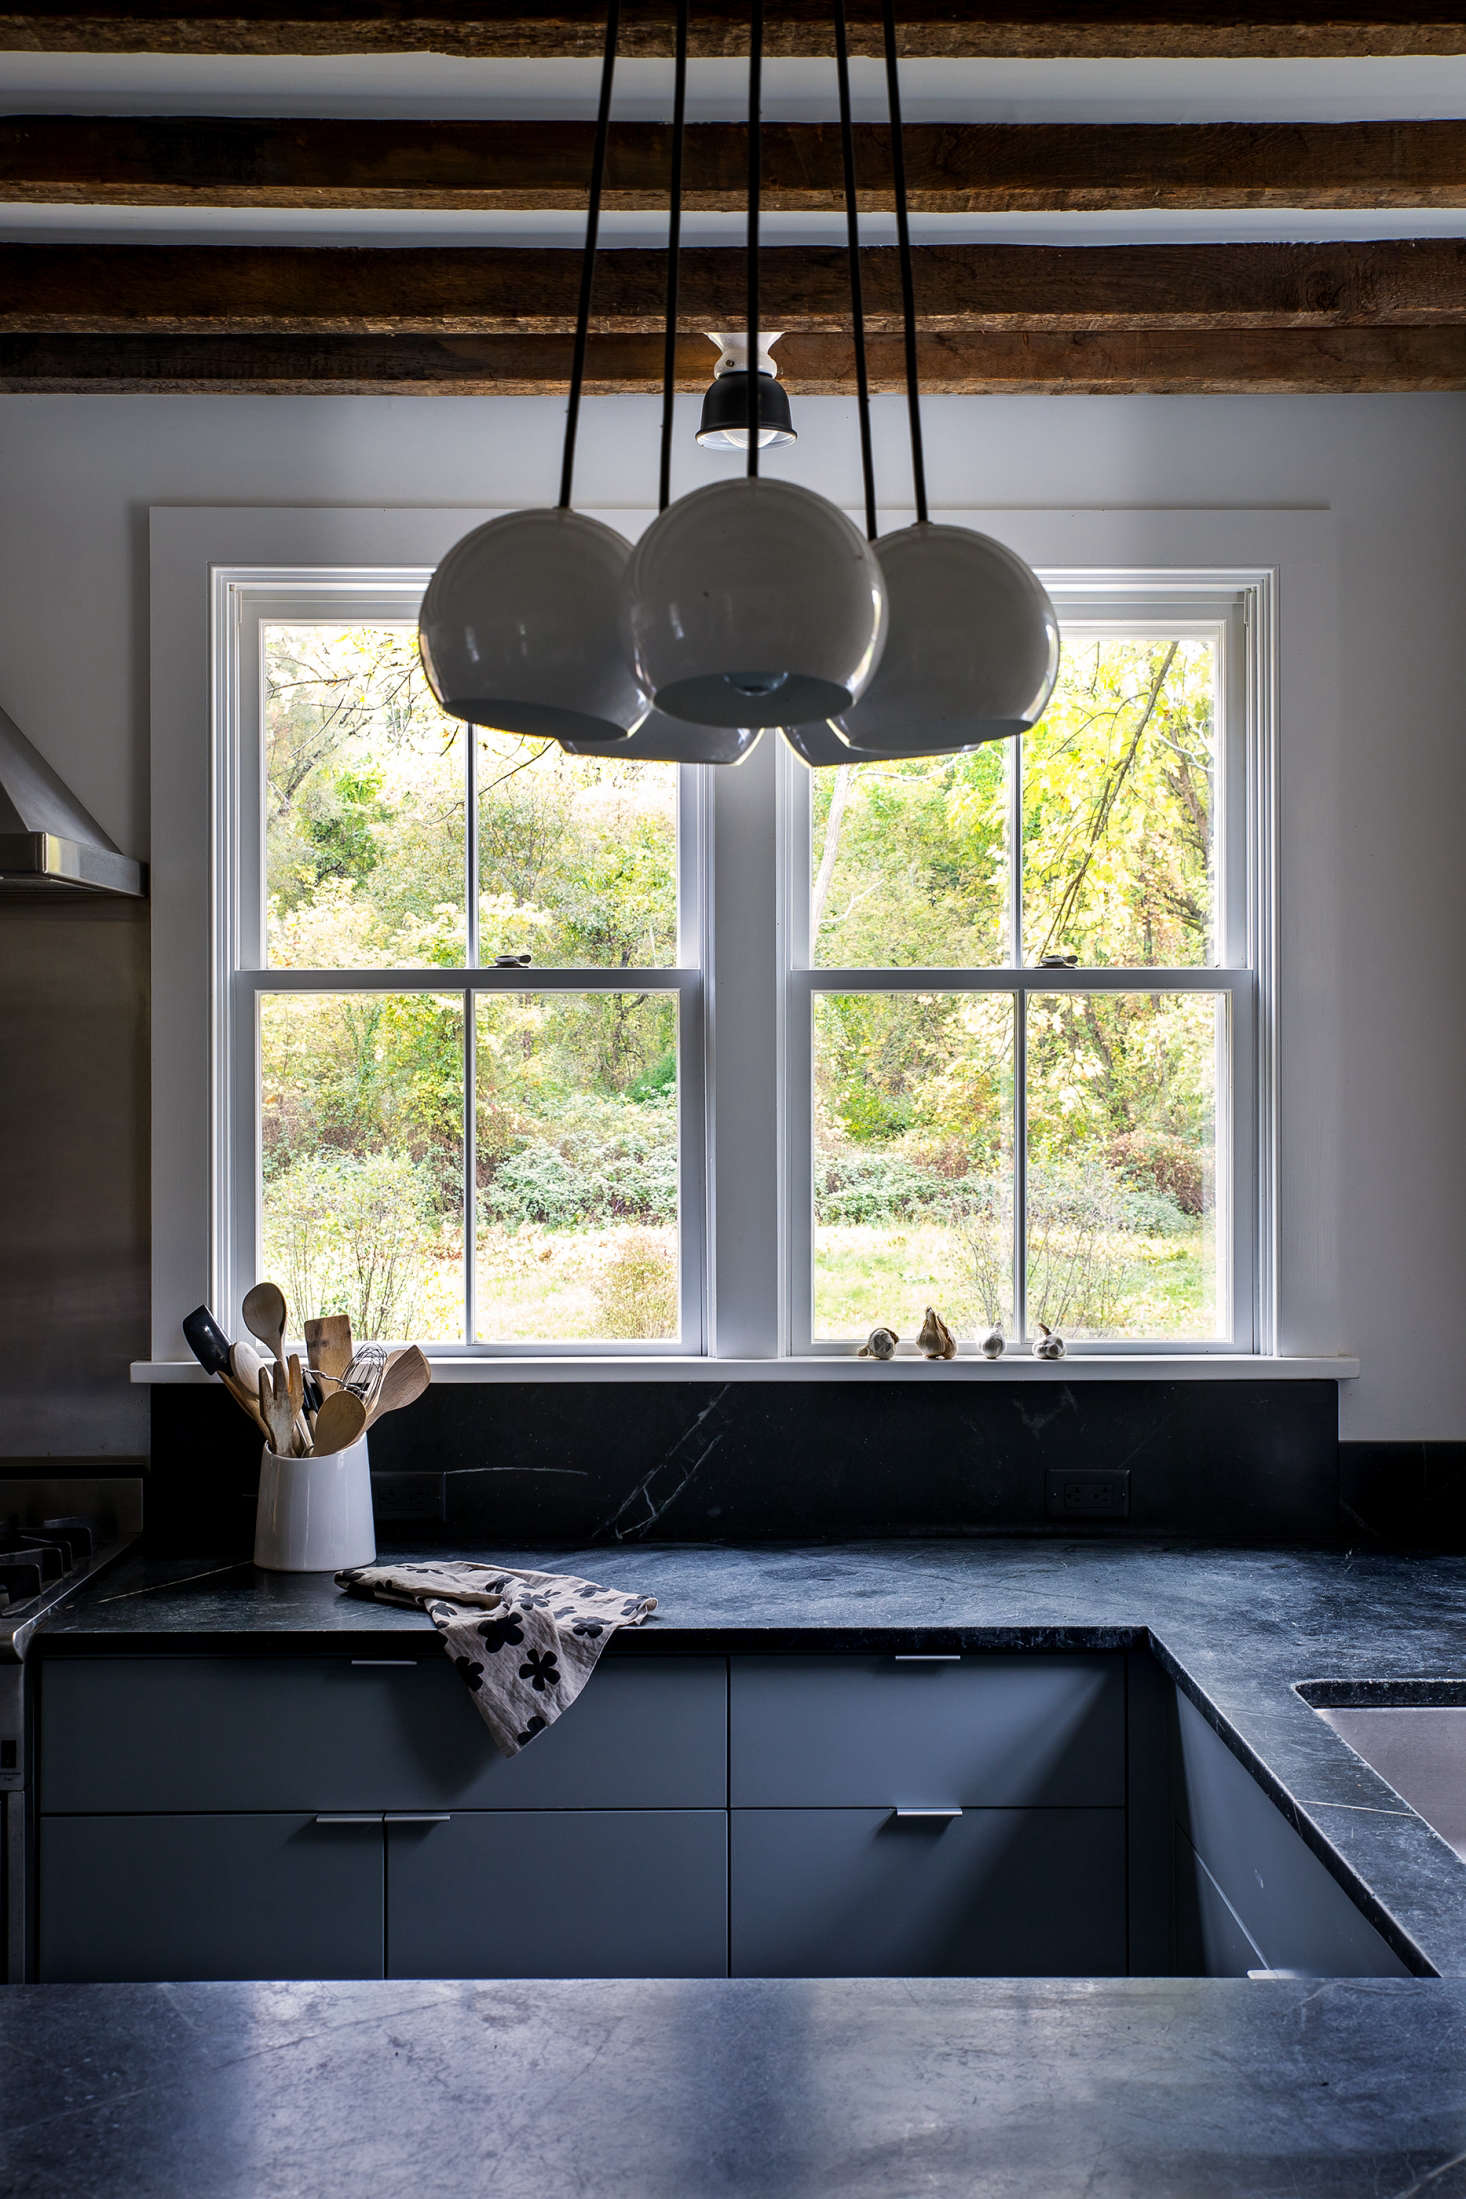 Dunja also removed a central island in favor of a U-shaped counter layout. (The tea towel on the countertop was designed by Dunja. Visit her her online shop, Doonyaya, for similar.) A cluster chandelier from Schoolhouse Electric illuminates the breakfast bar.